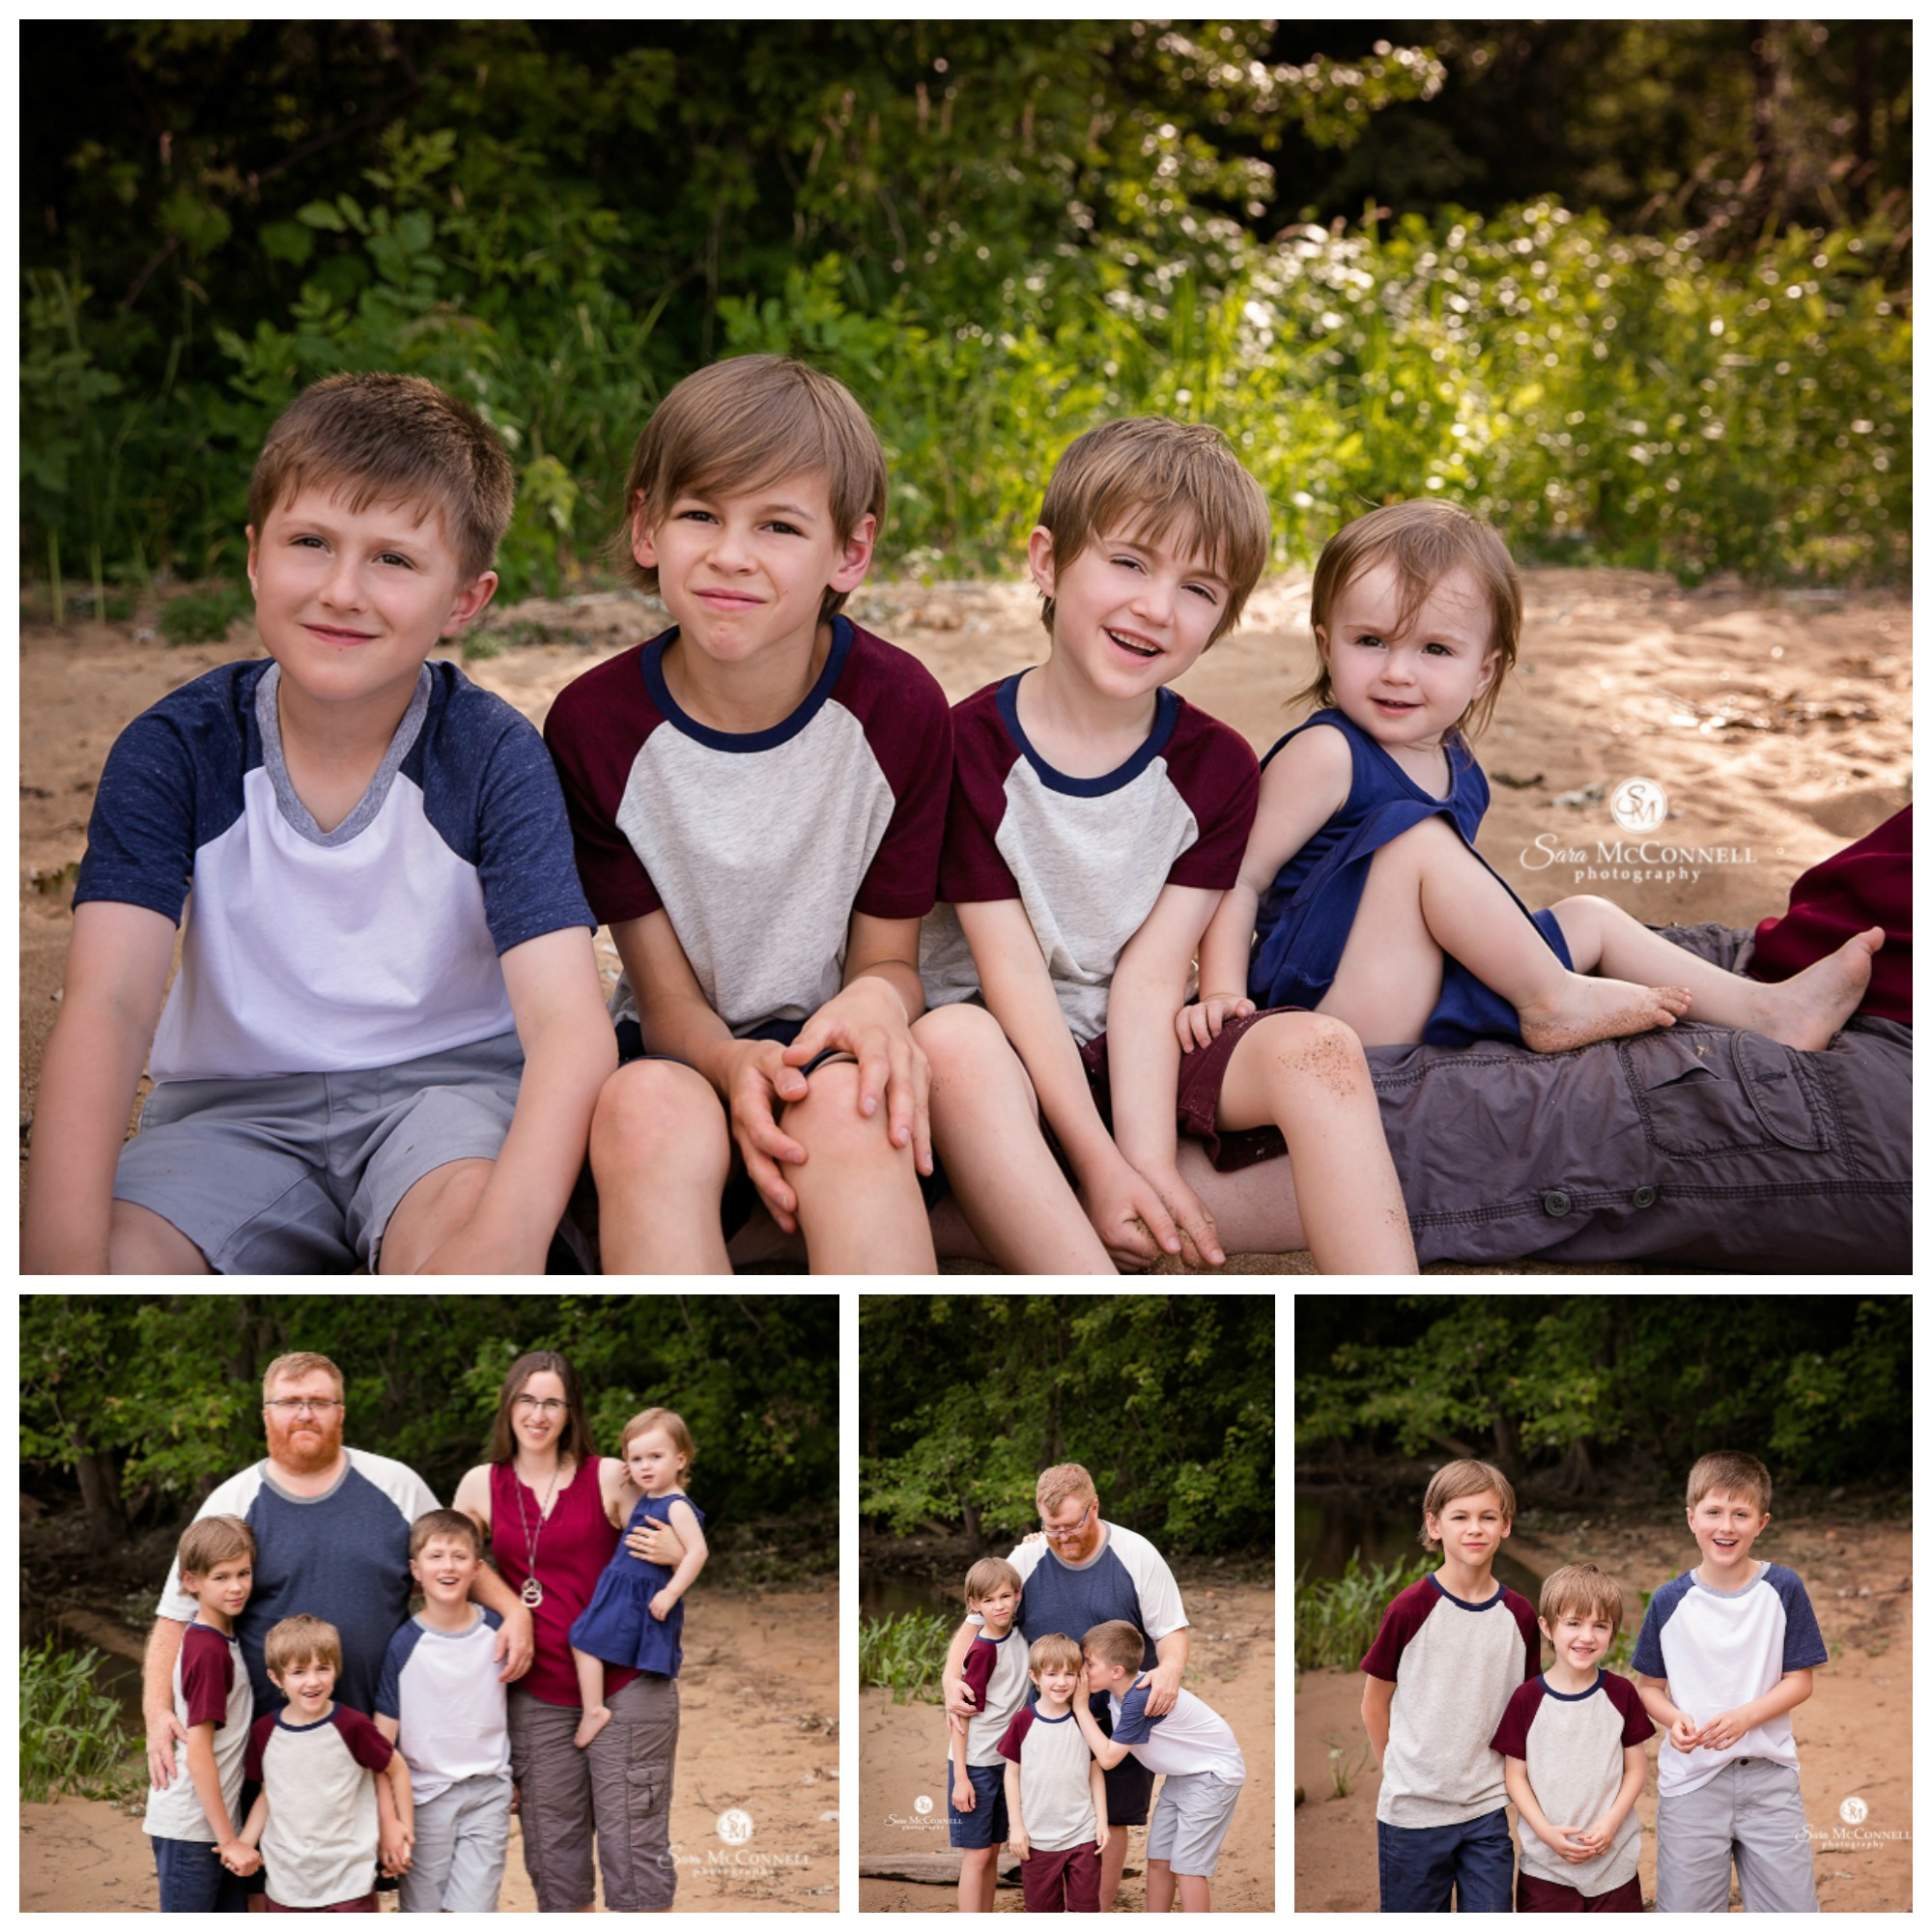 Summer Photos in Ottawa by Sara McConnell Photography